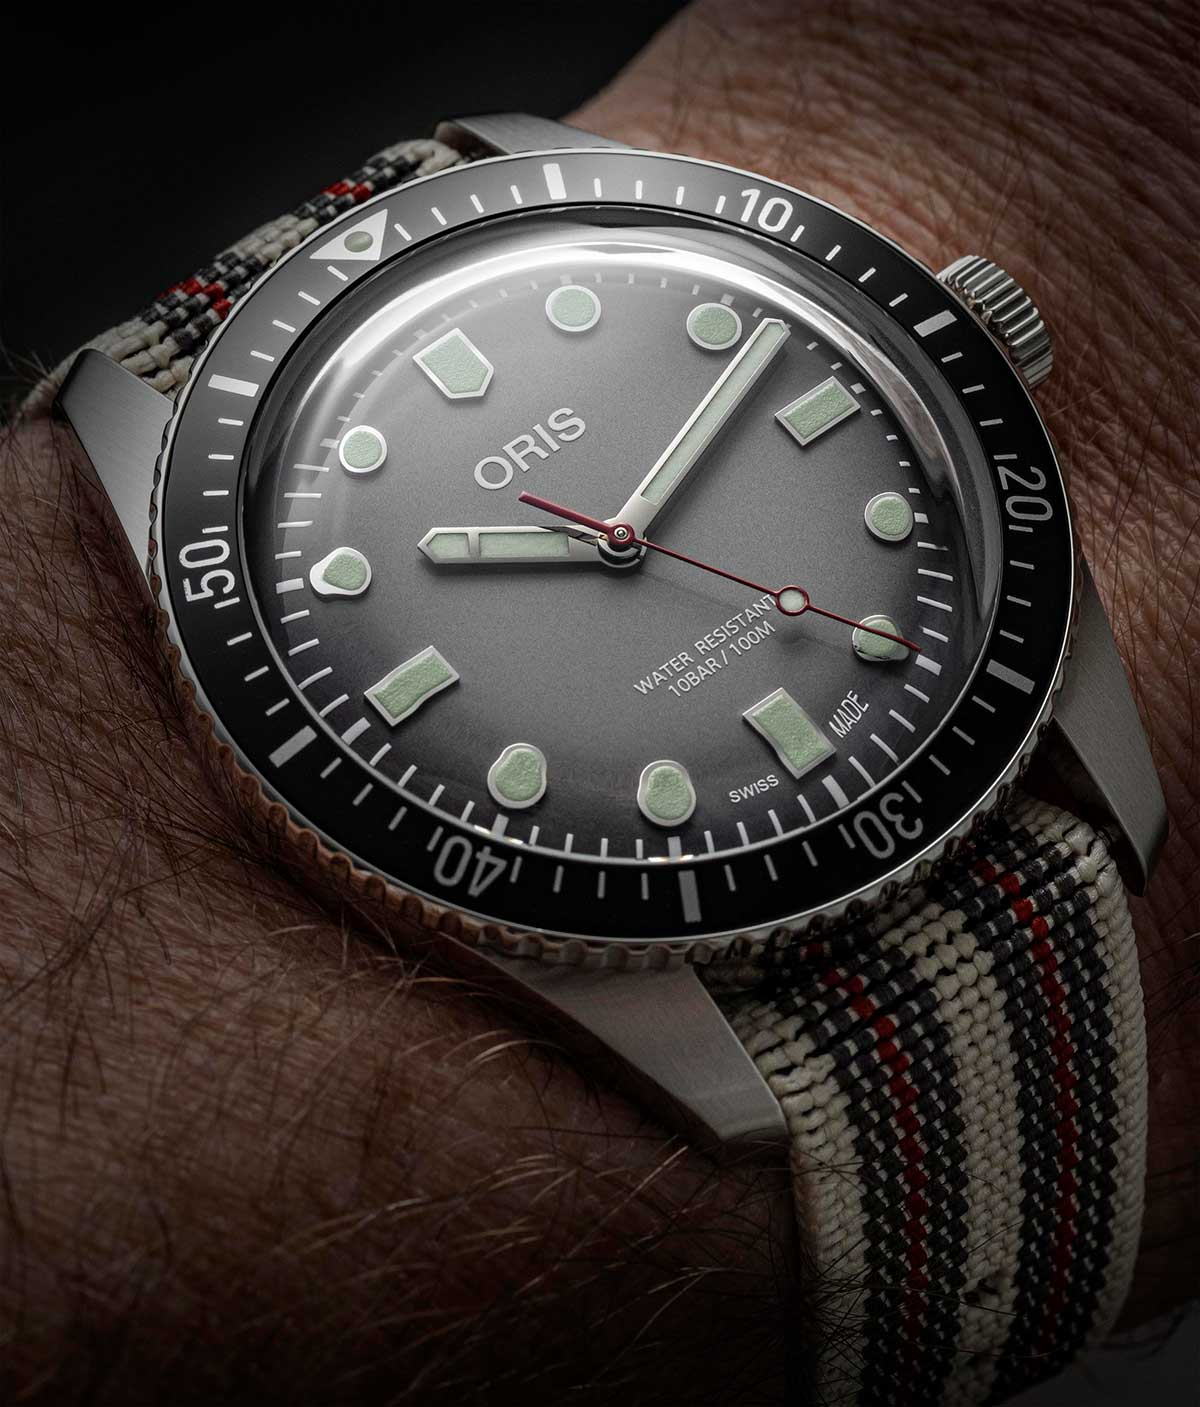 El Cronotempvs Spirit of Sixty-Five by Oris con una NATO